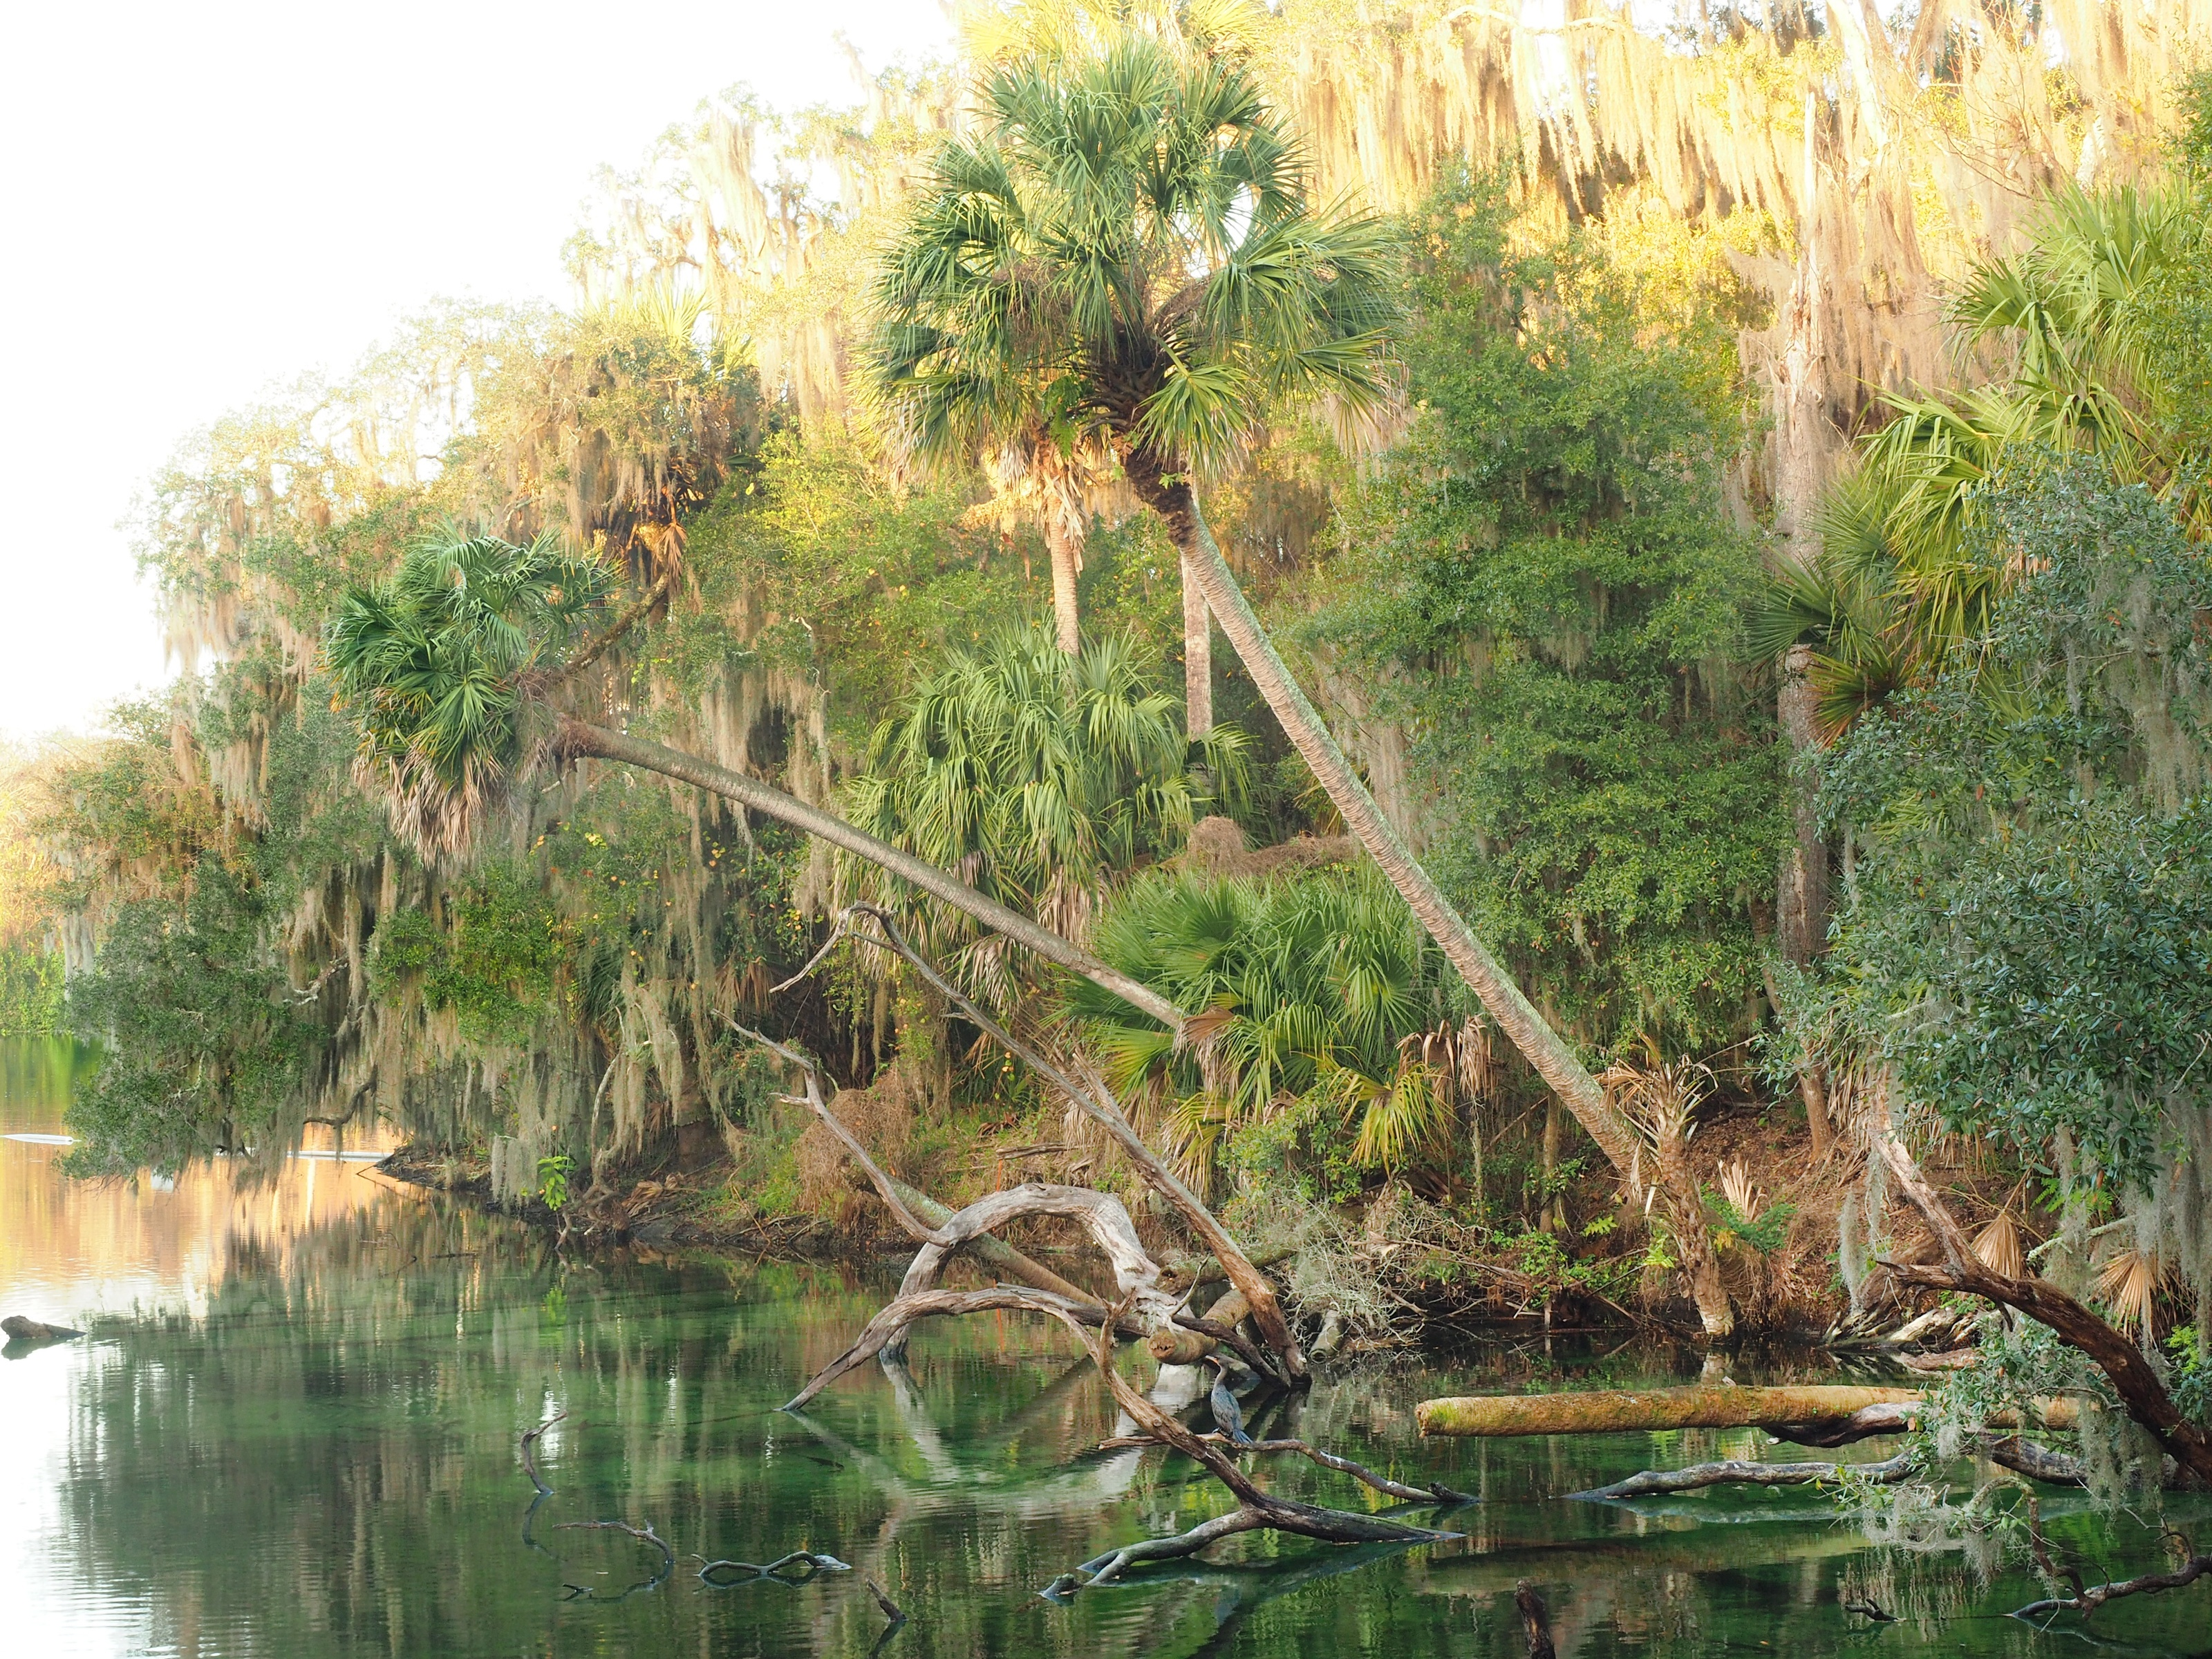 Florida springs prove to be one of the best weekend destinations